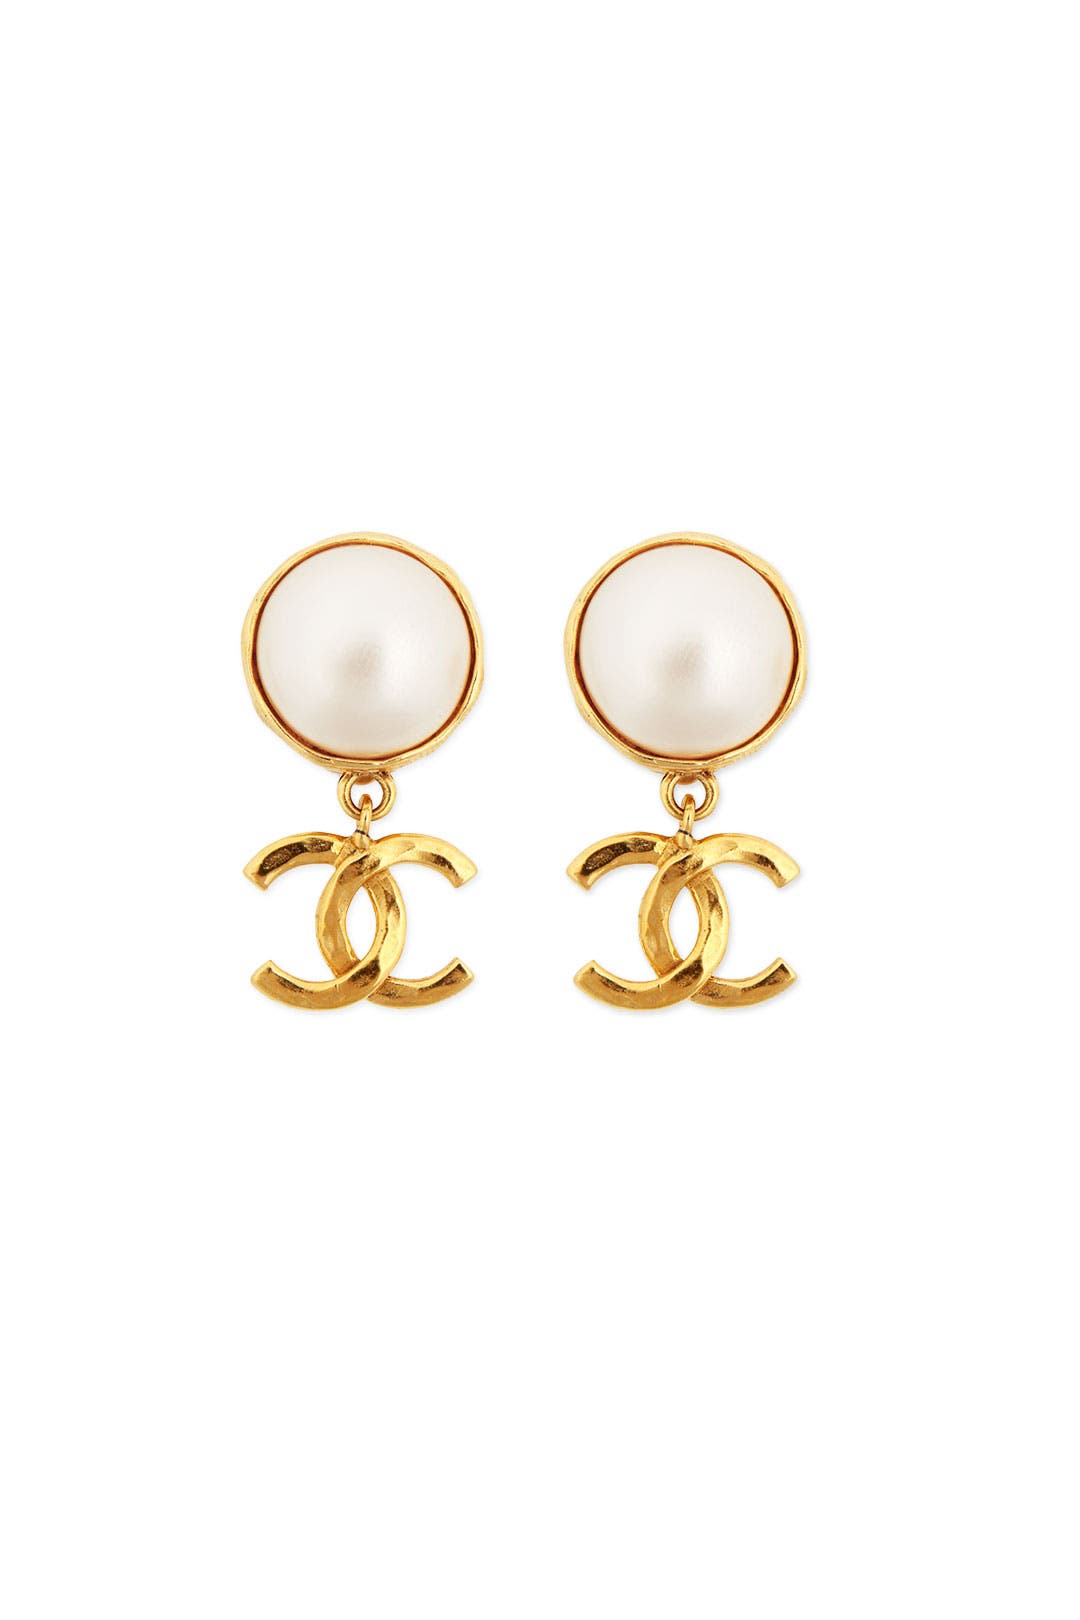 Vintage Chanel CC Pearl Drop Earrings by WGACA Vintage